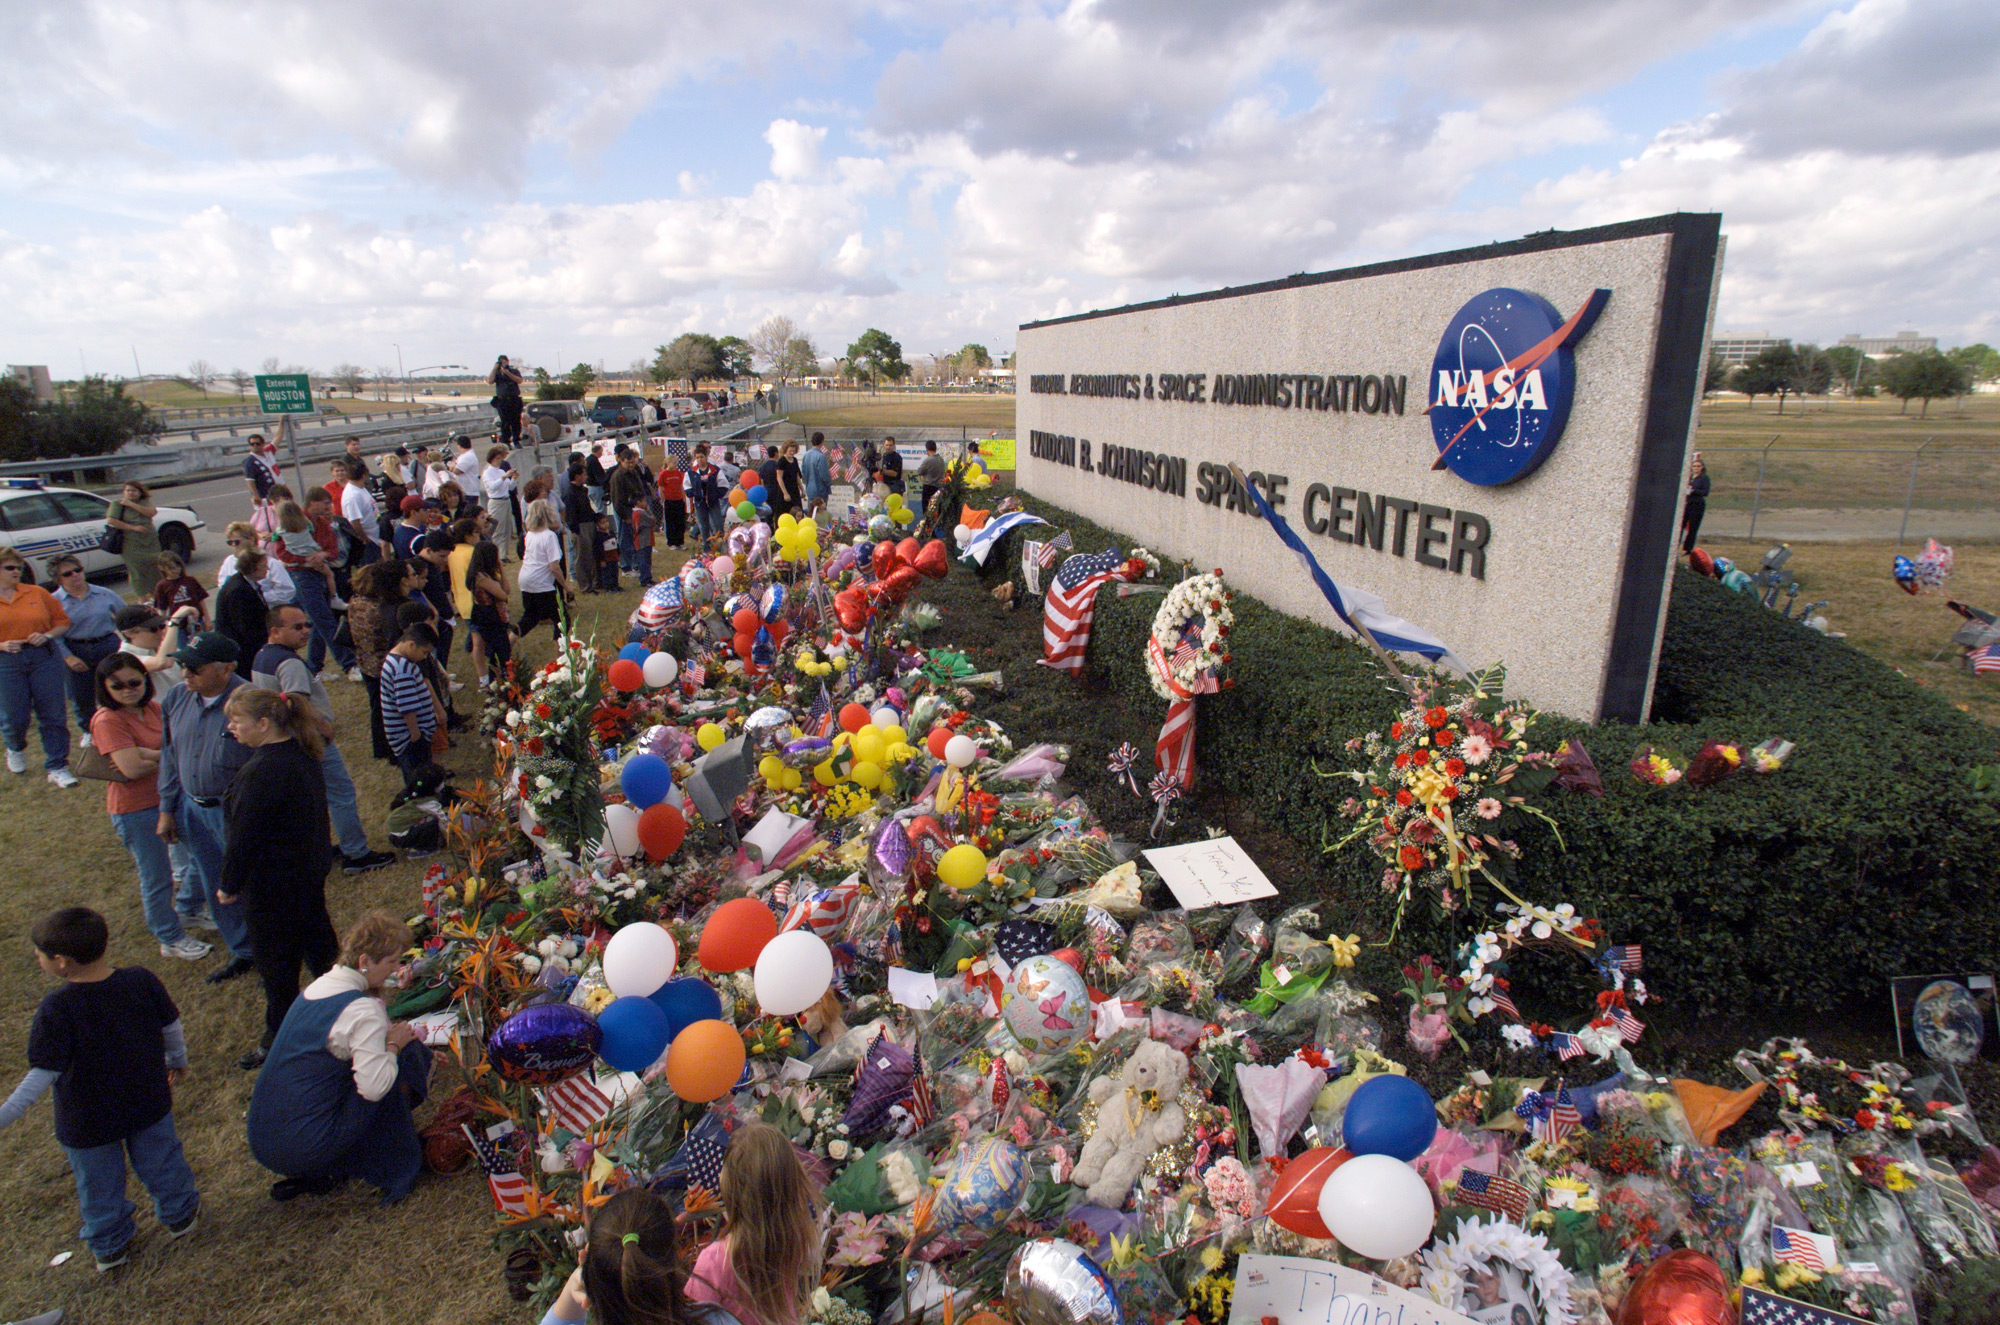 Full Text of Statement by NASA Administrator Sean O'Keefe on Shuttle Columbia Loss